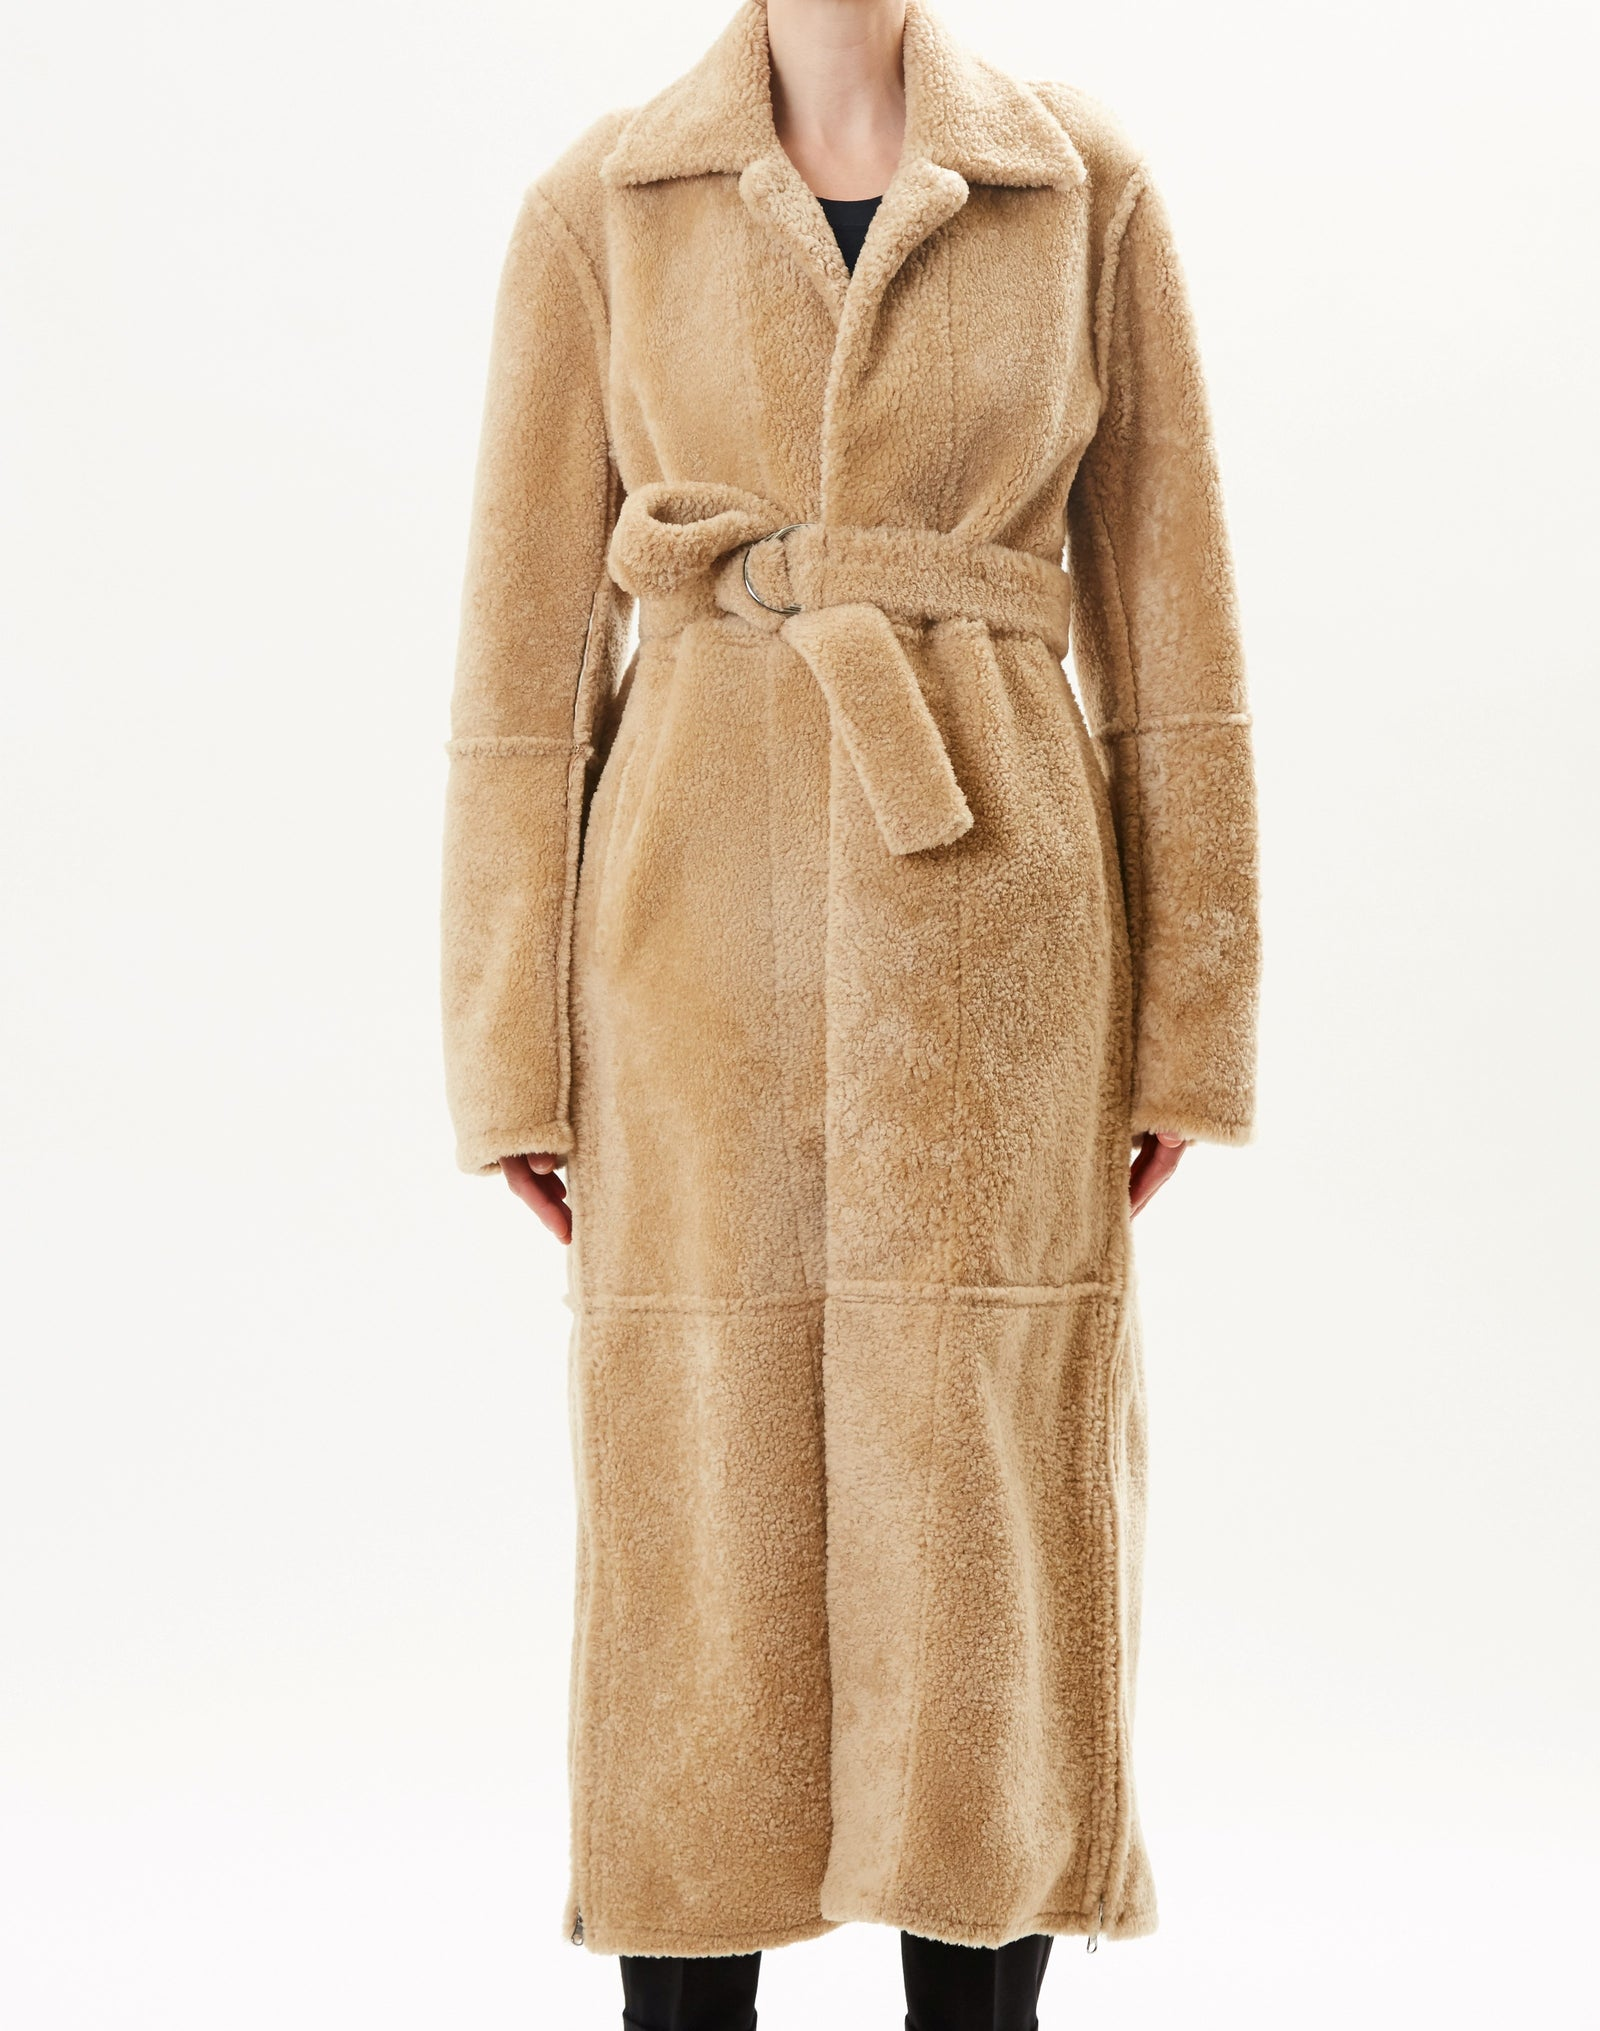 Pre-Order Reversible Belted Shearling Coat